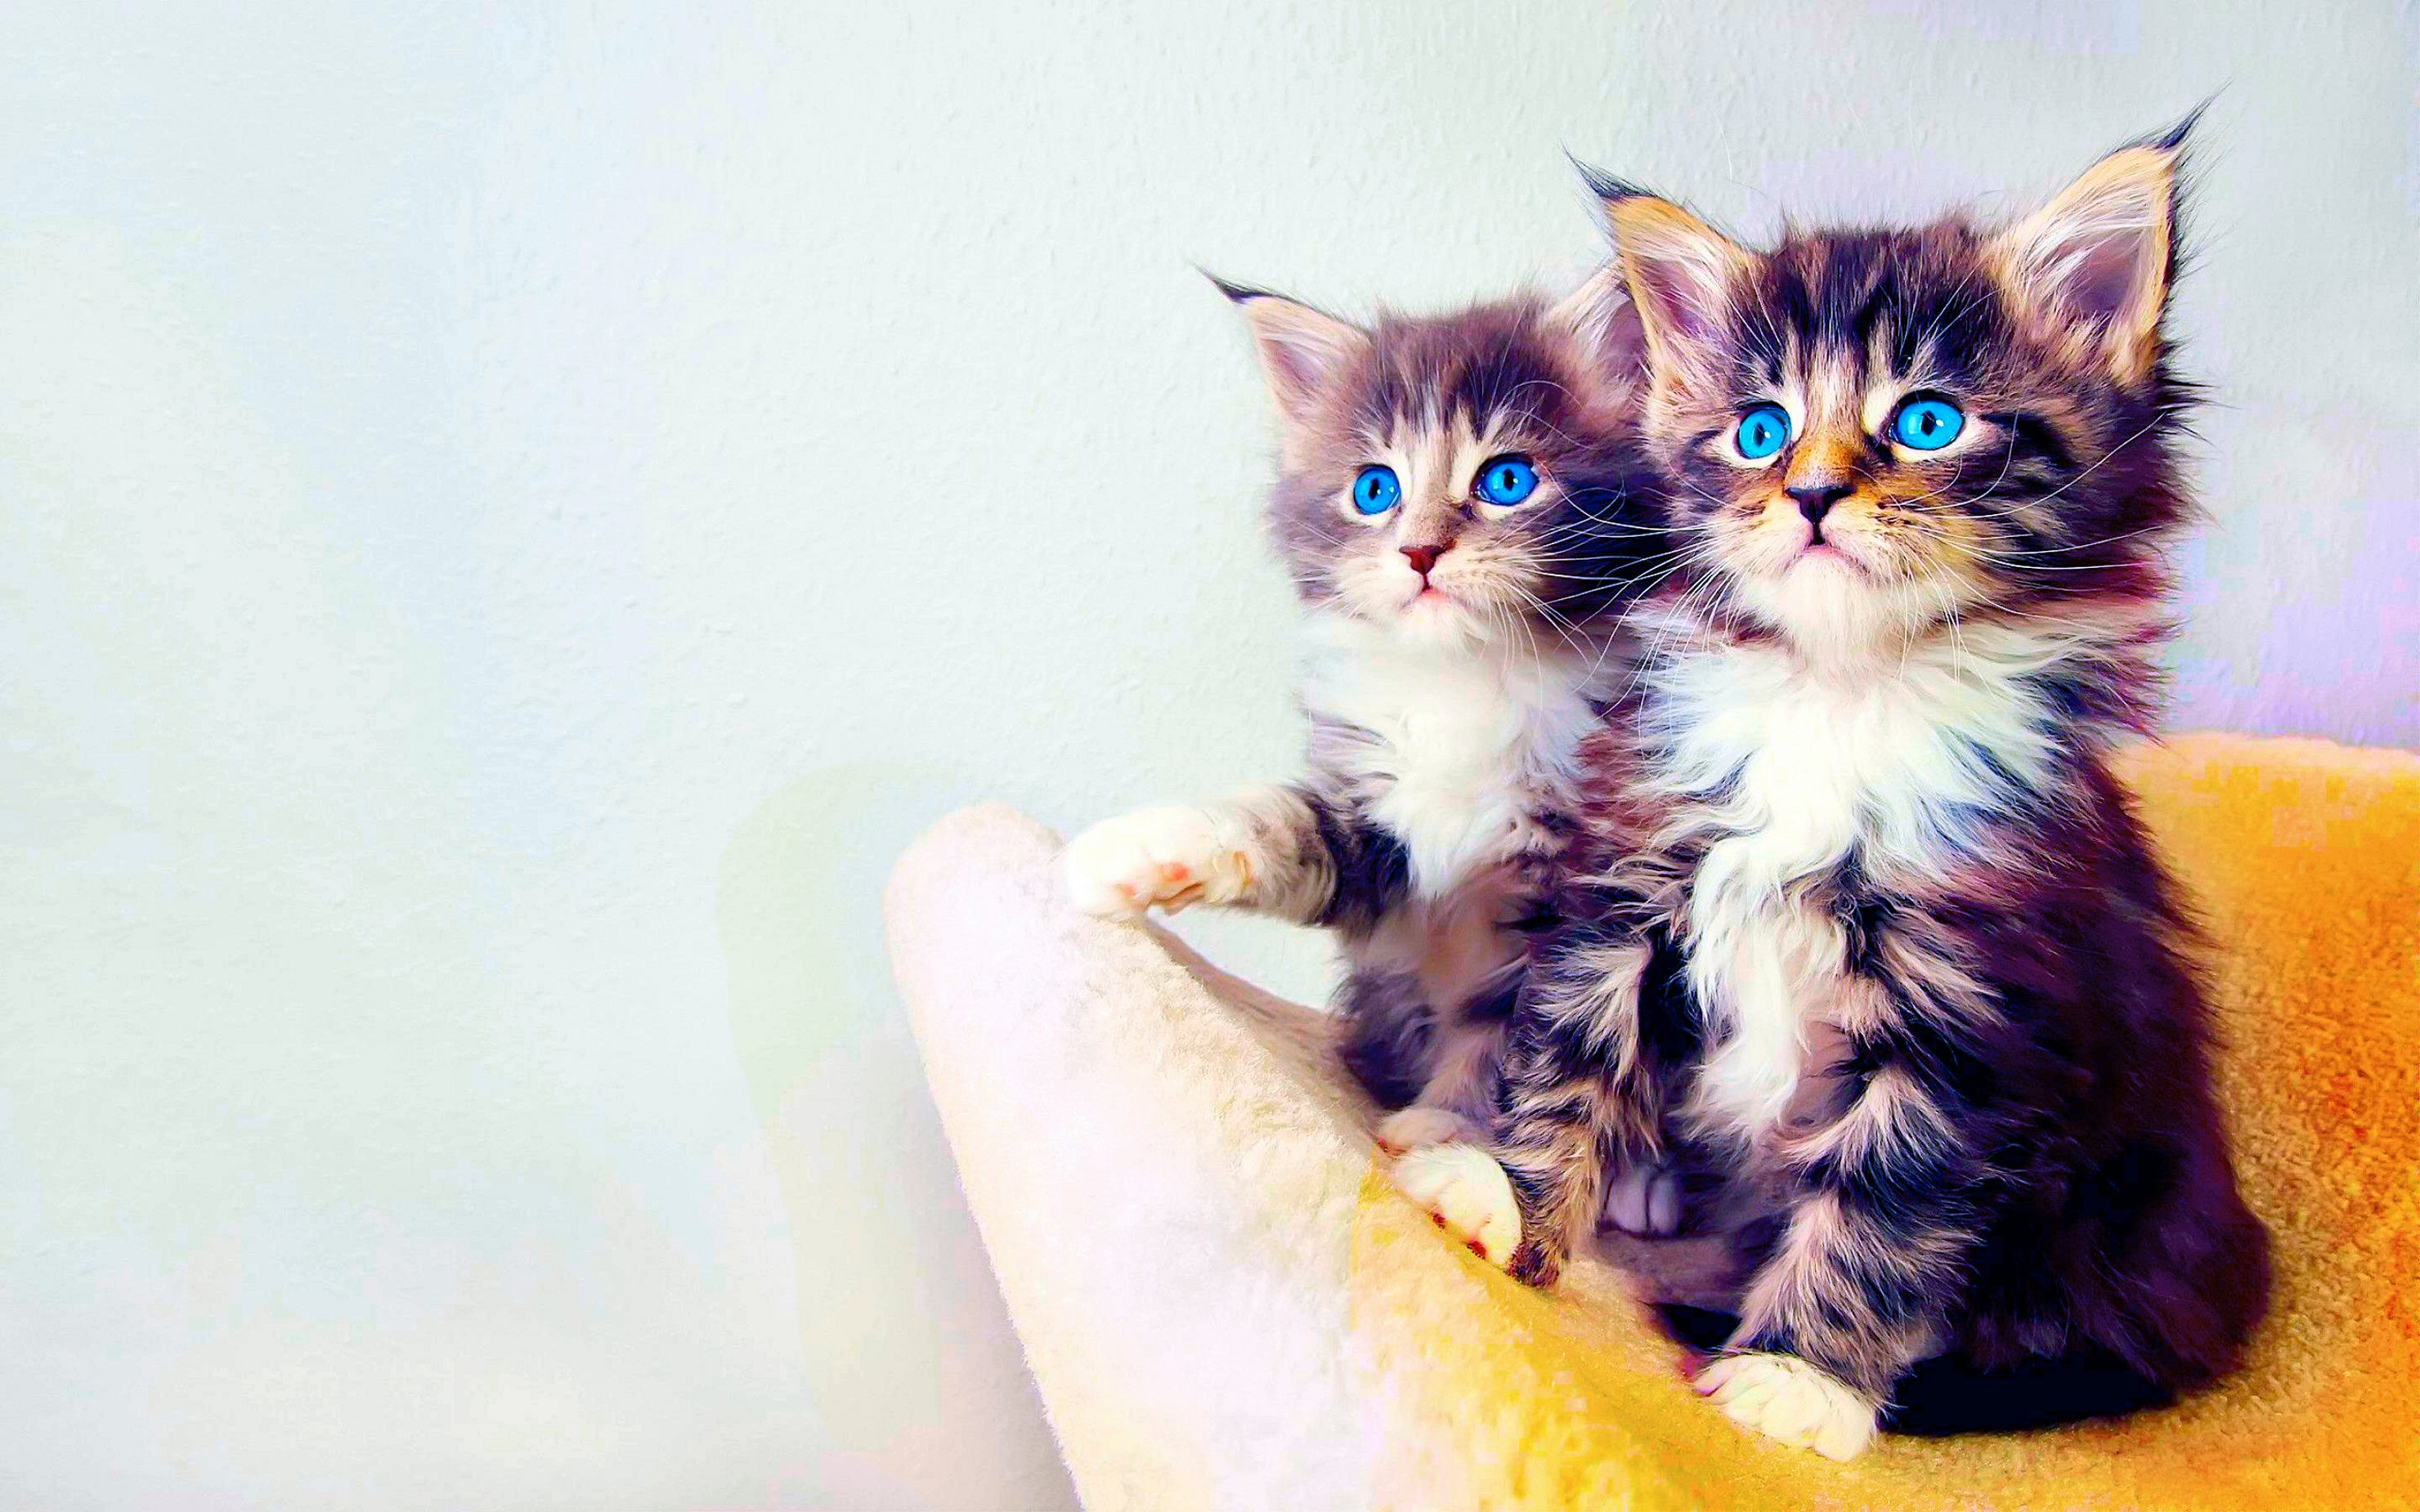 2960x1850 Splendid 6592 Cat Hd Wallpapers | Backgrounds - Wallpaper Abyss plus Cat  Wallpaper Phone Hd